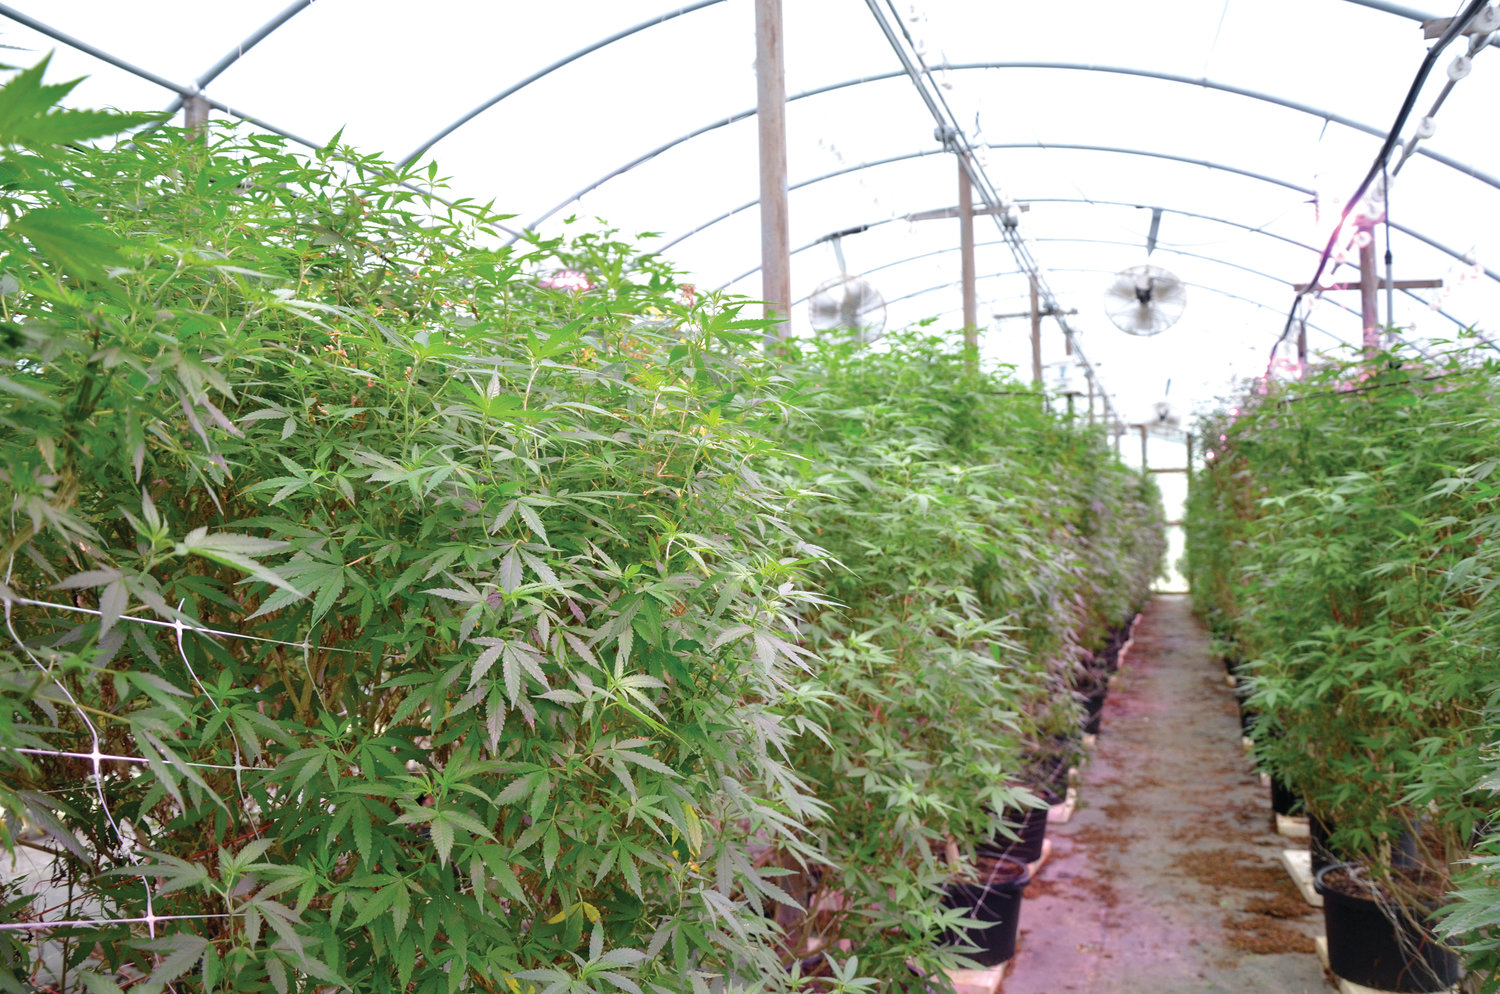 The Gary Thomas Farms now utilize seven greenhouses for hemp production. A single greenhouse can hold about 150 plants with each plant able to produce up to one pound of industial hemp flower.